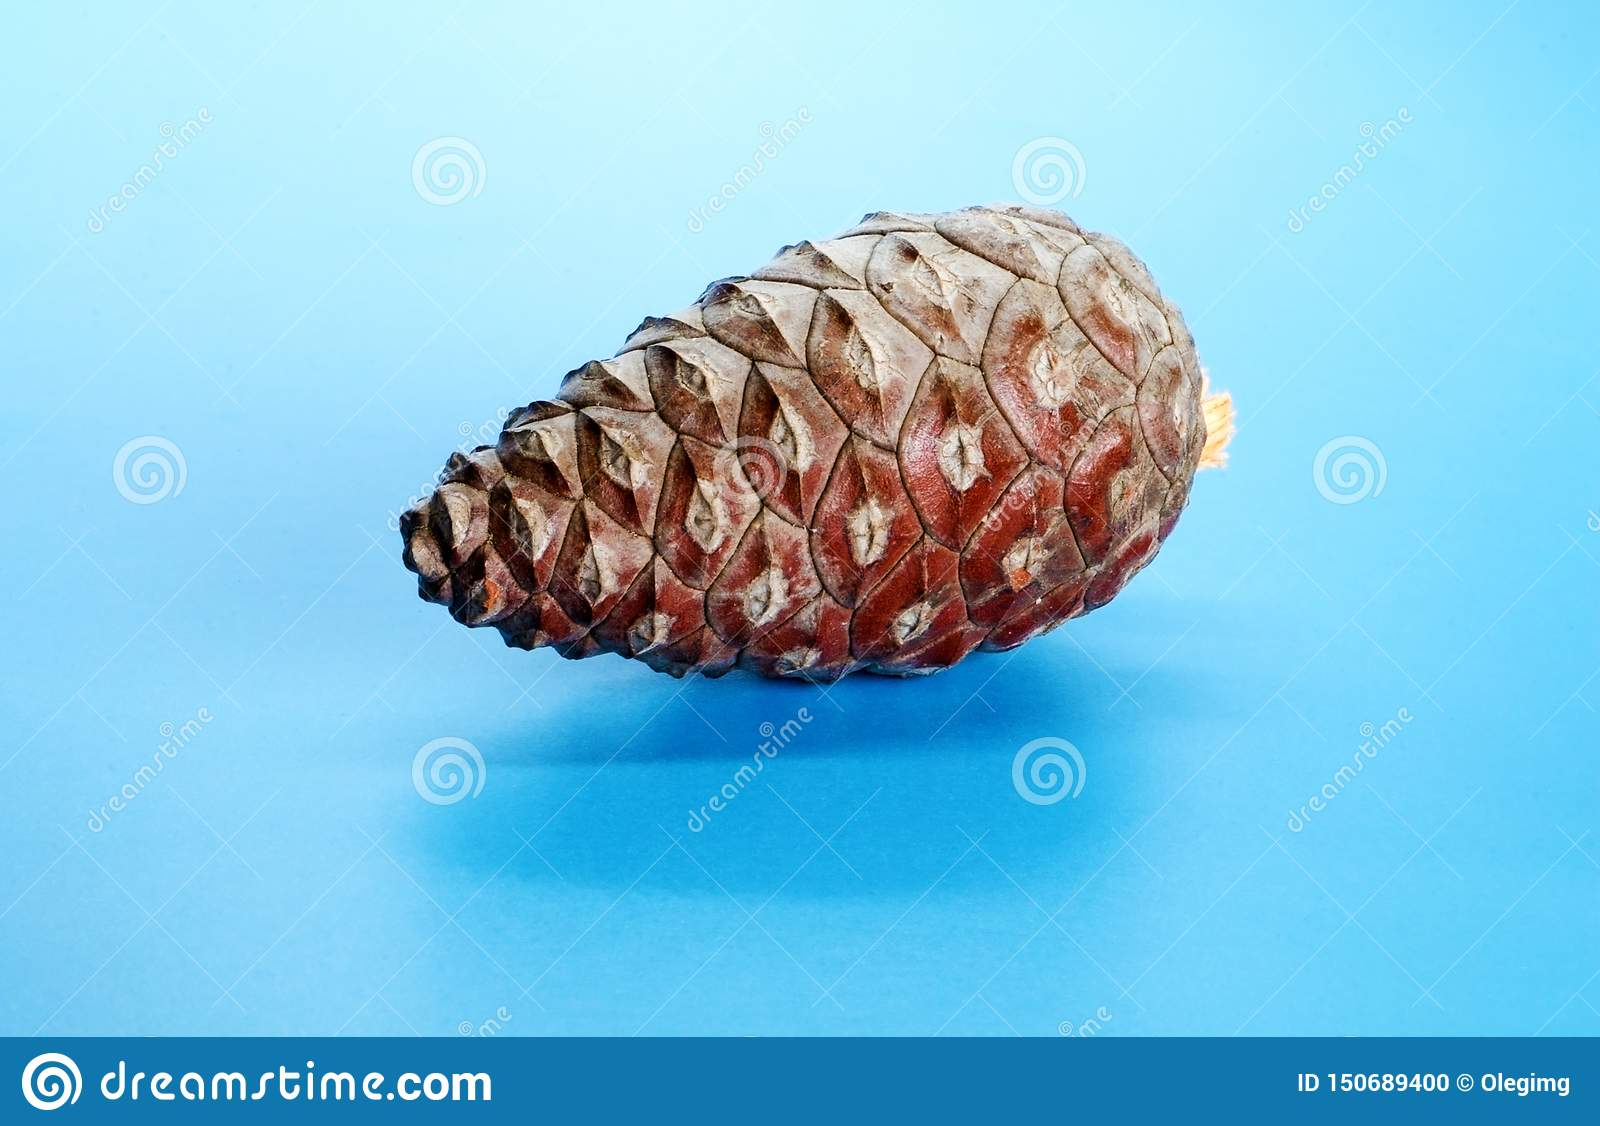 Pine cone on blue background